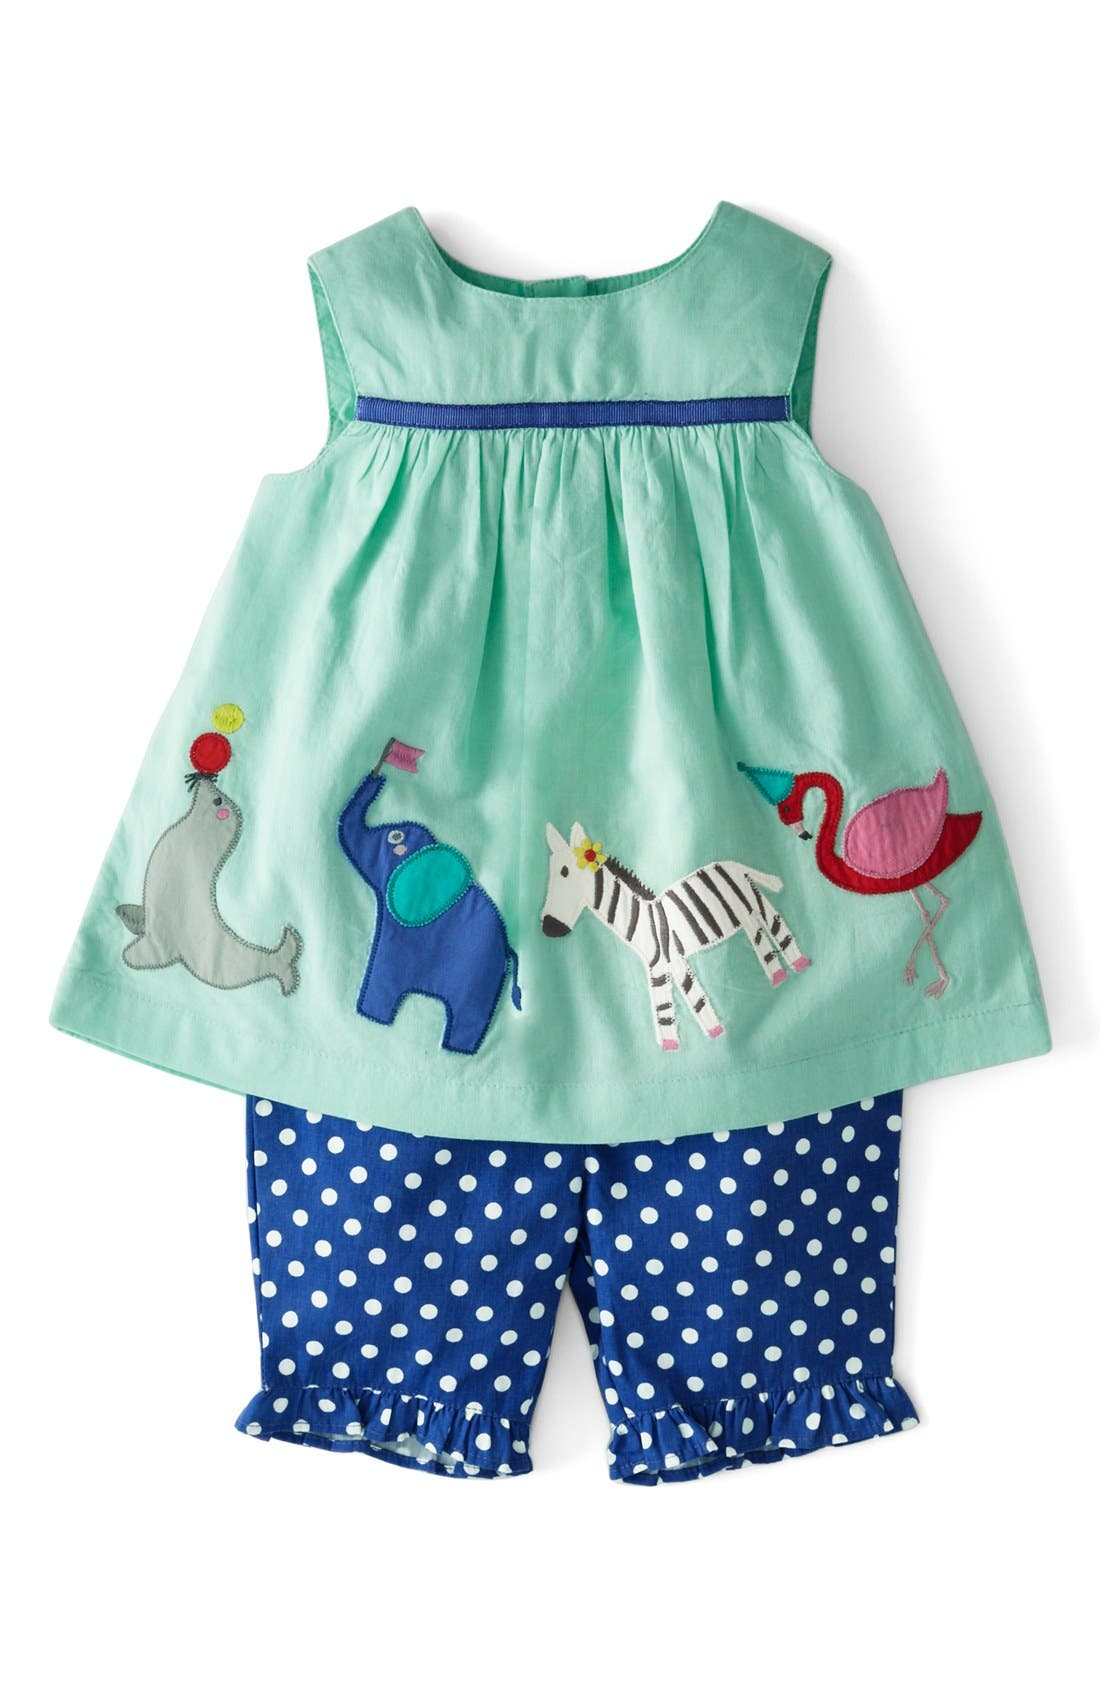 Alternate Image 1 Selected - Mini Boden 'Summer Play Set' Embroidered Appliqué Top & Crop Pants (Baby Girls)